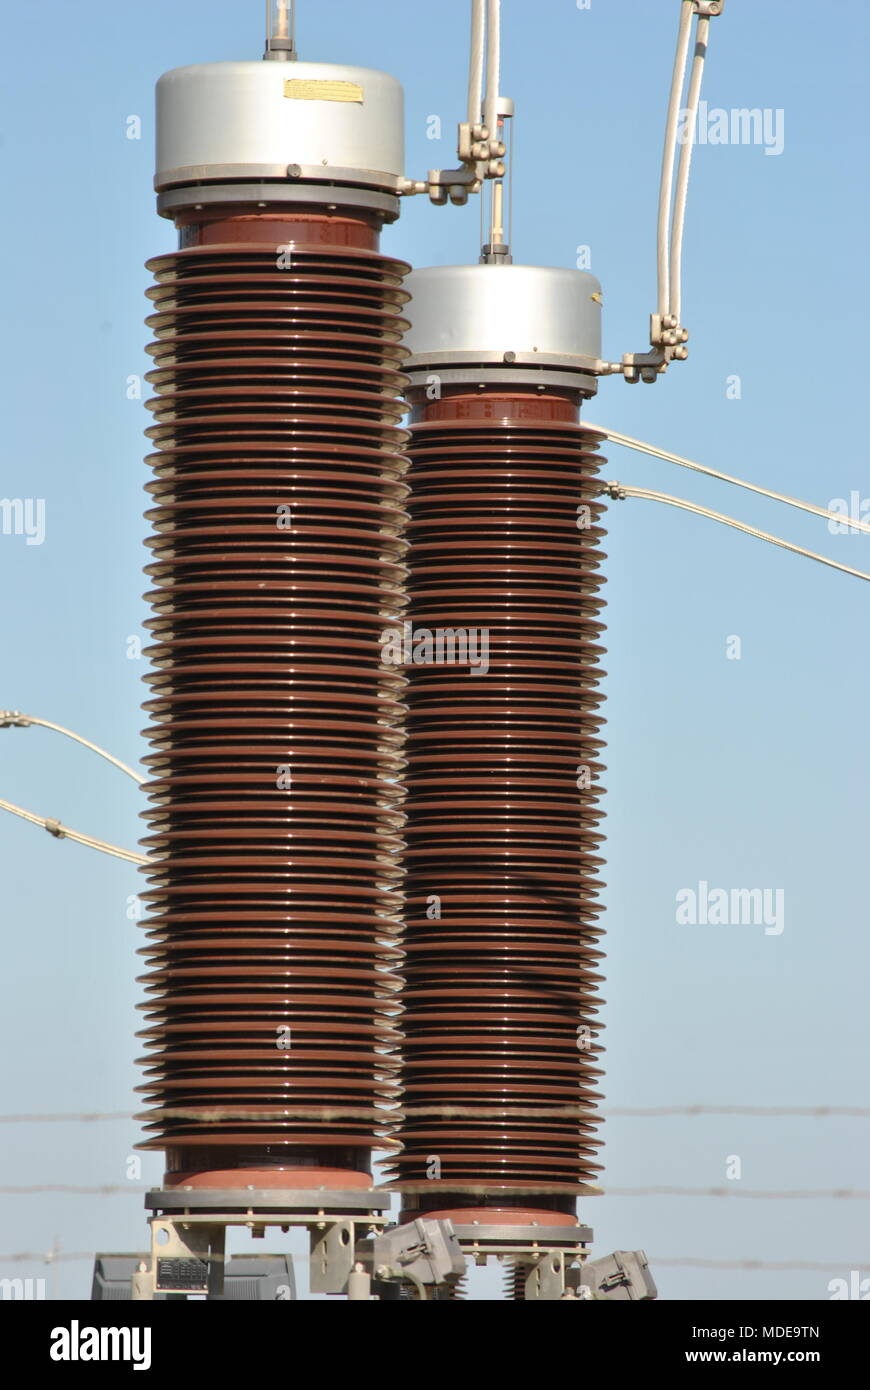 Electric high voltage plant - Stock Image